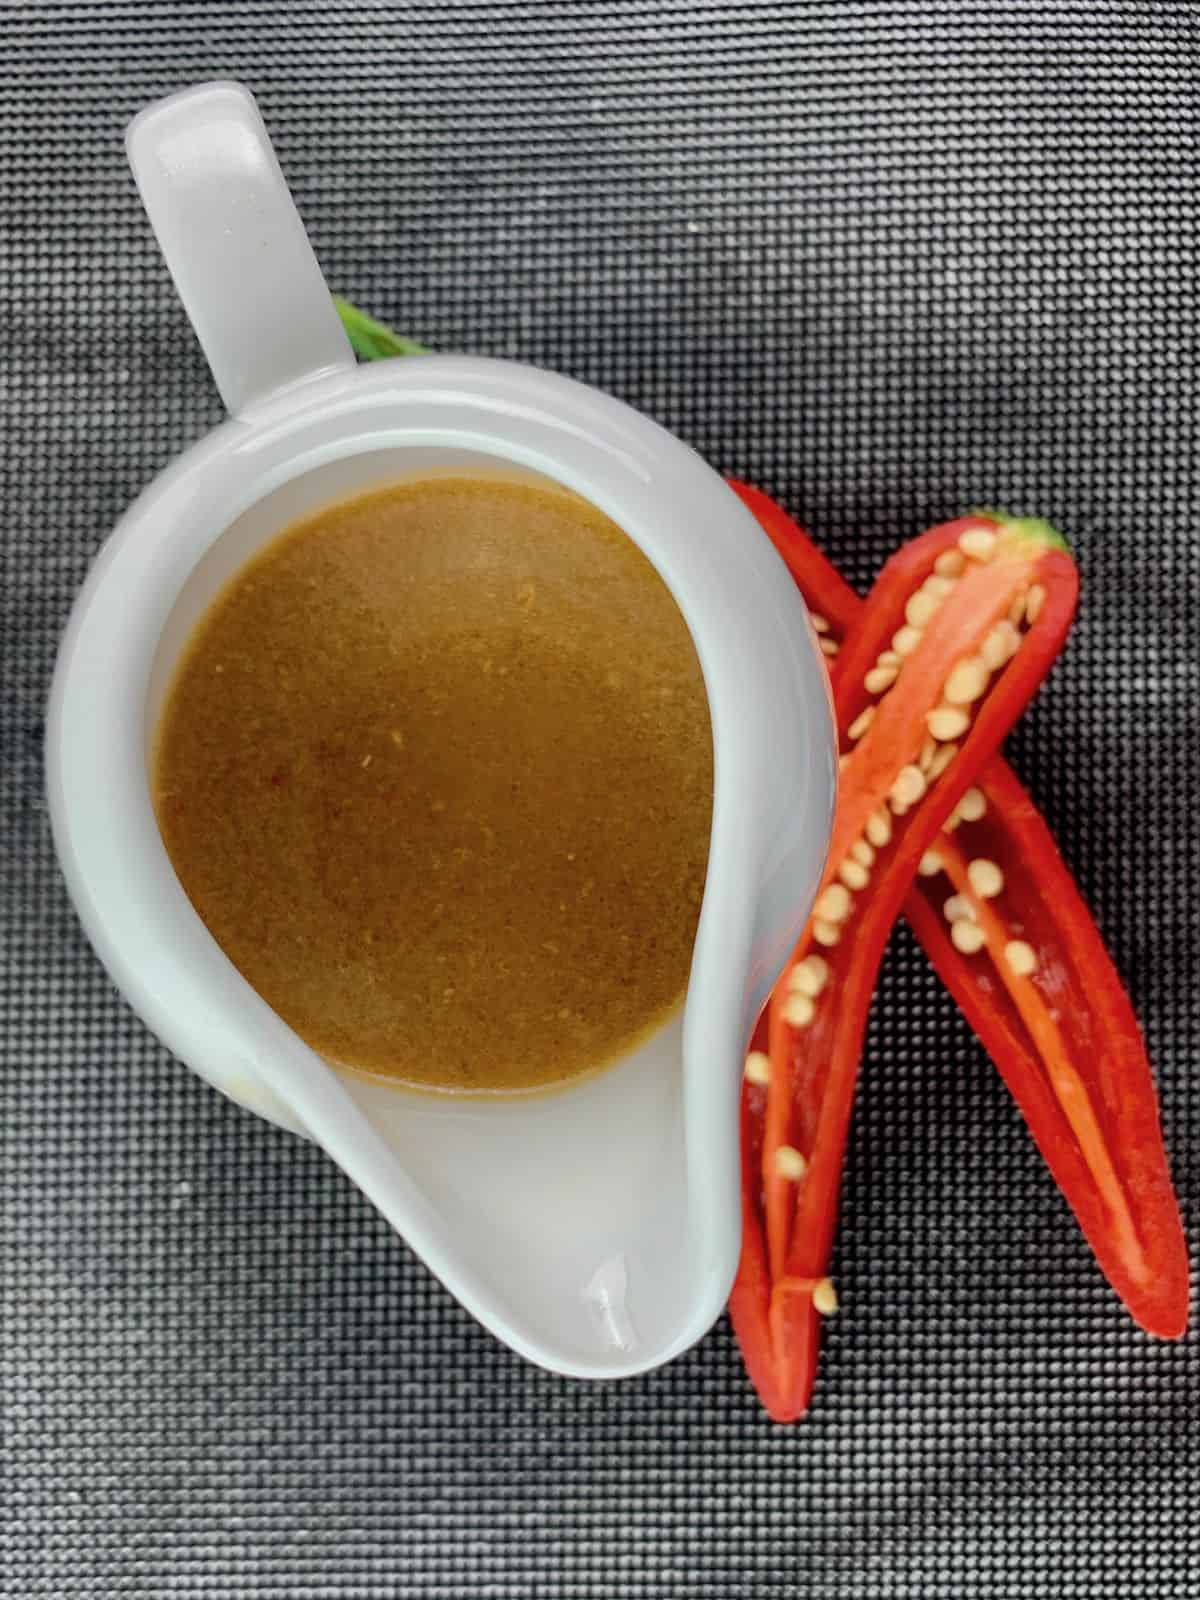 HARISSA VINAIGRETTE IN A WHITE JUG WITH CUT CHILLIS ON THE SIDE